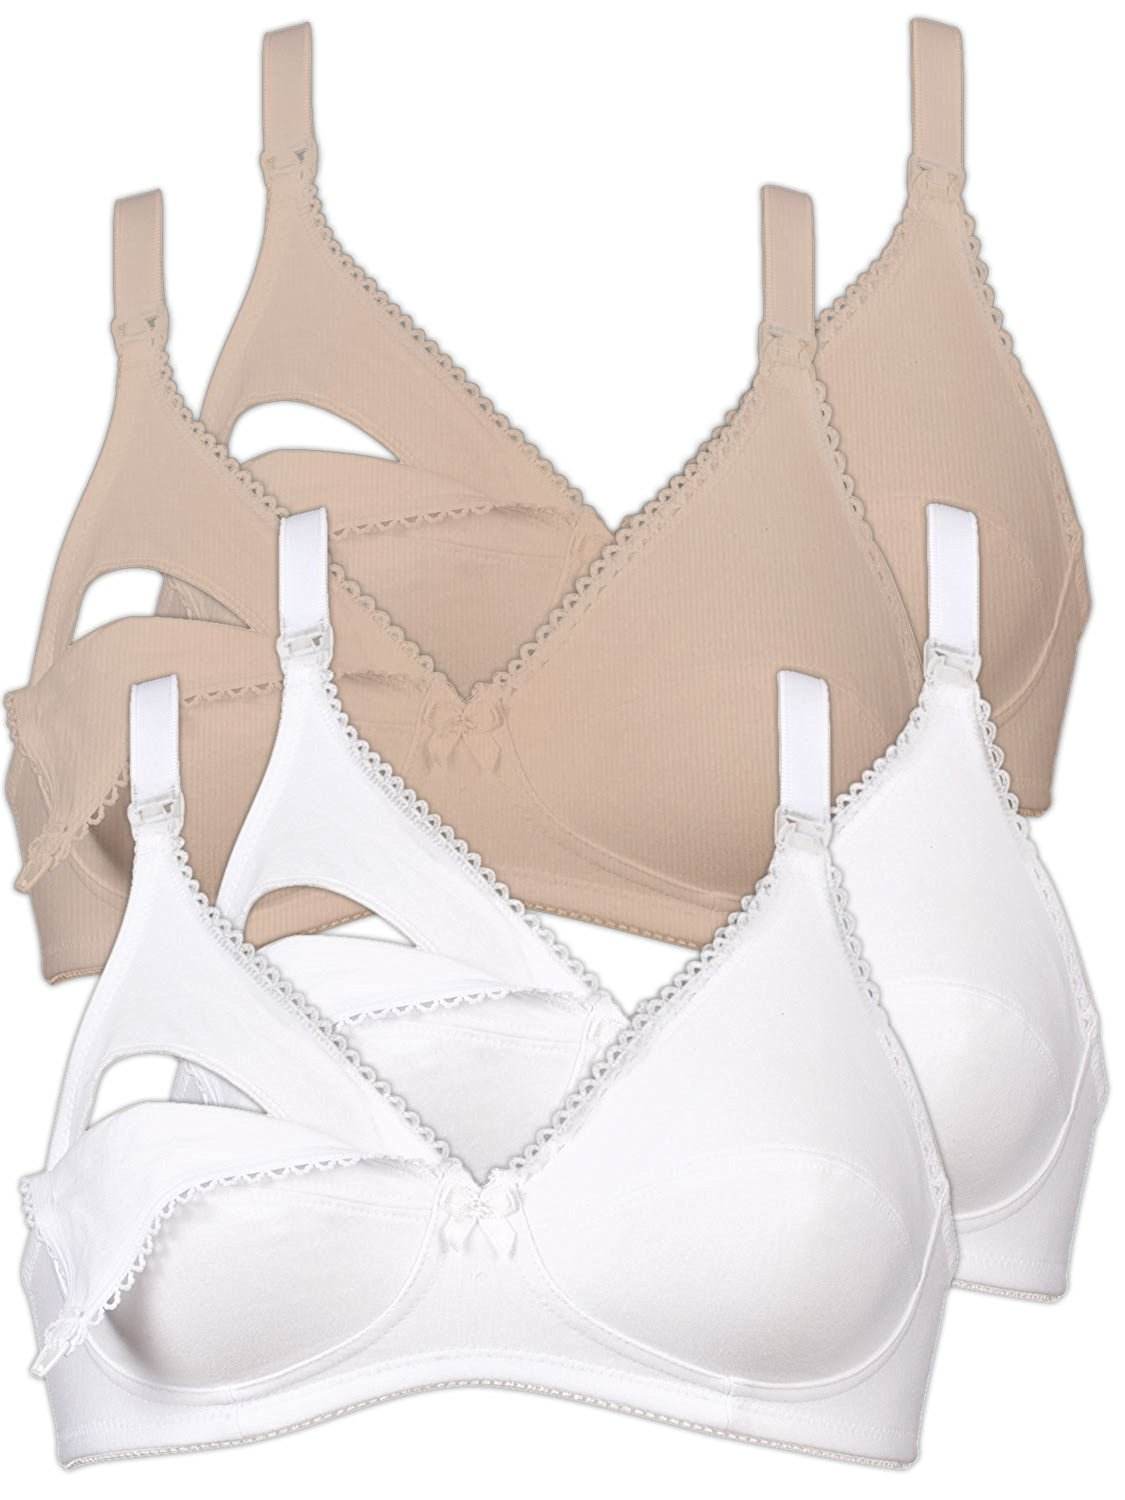 0760b55a7cace Get Quotations · Naturana Women s Pack Of 4 Wire Free Nursing Bra 5089 86989